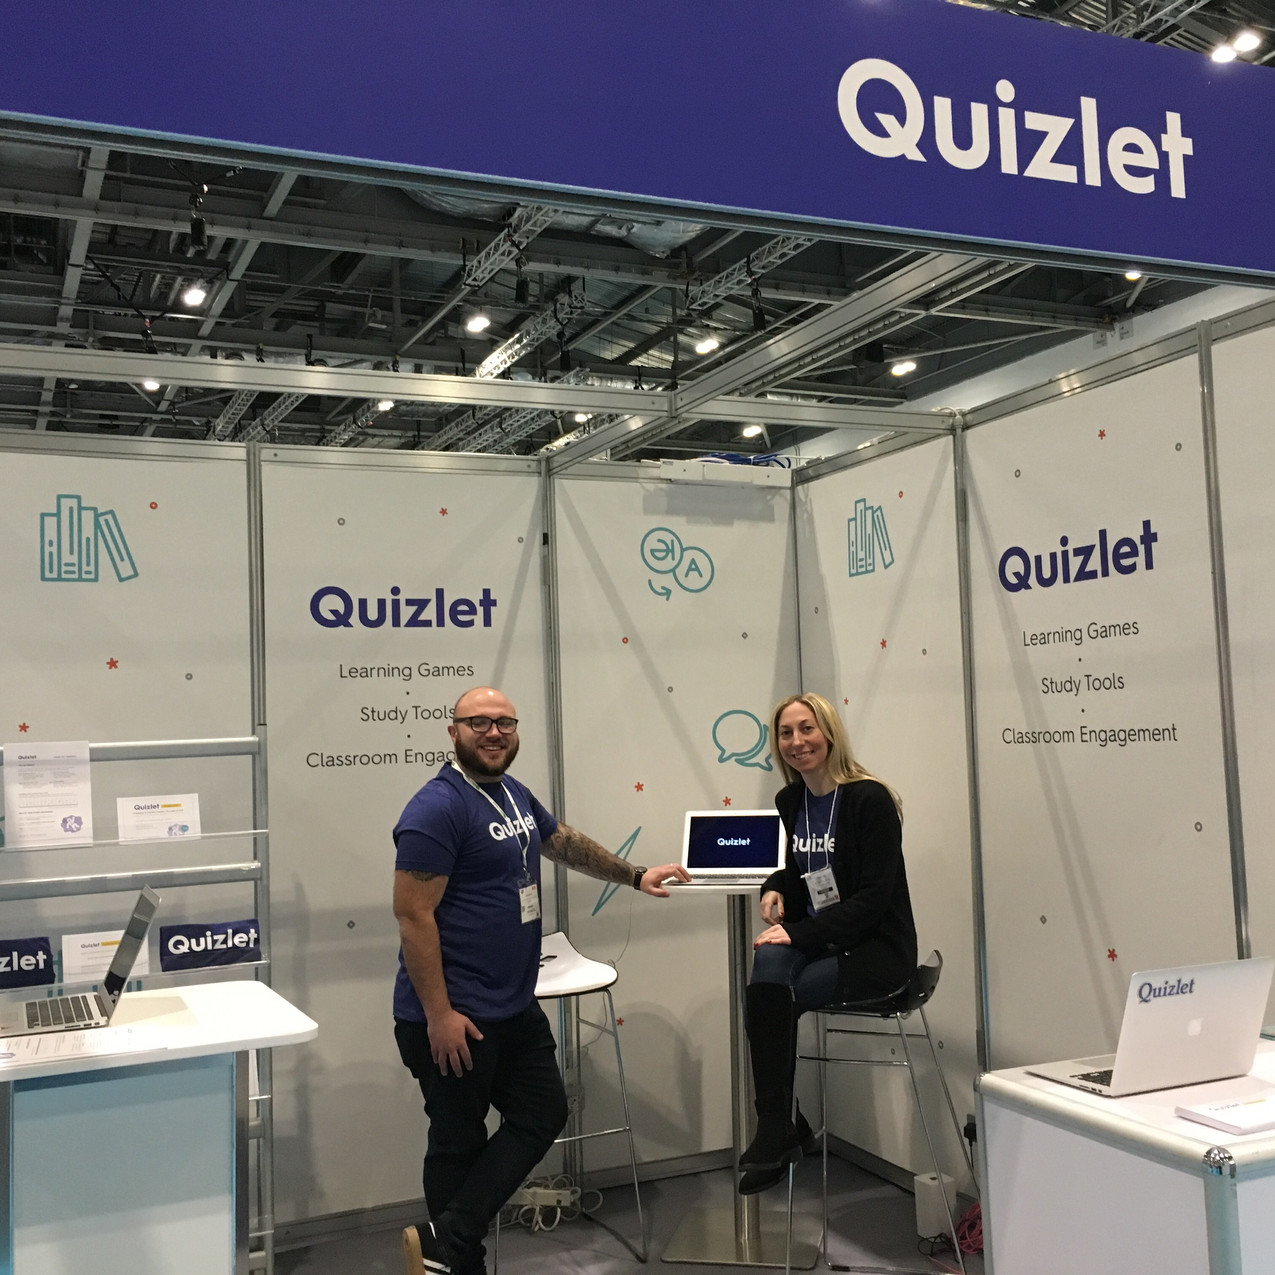 Images of Ben presenting at The Education Show for Quizlet January 2019